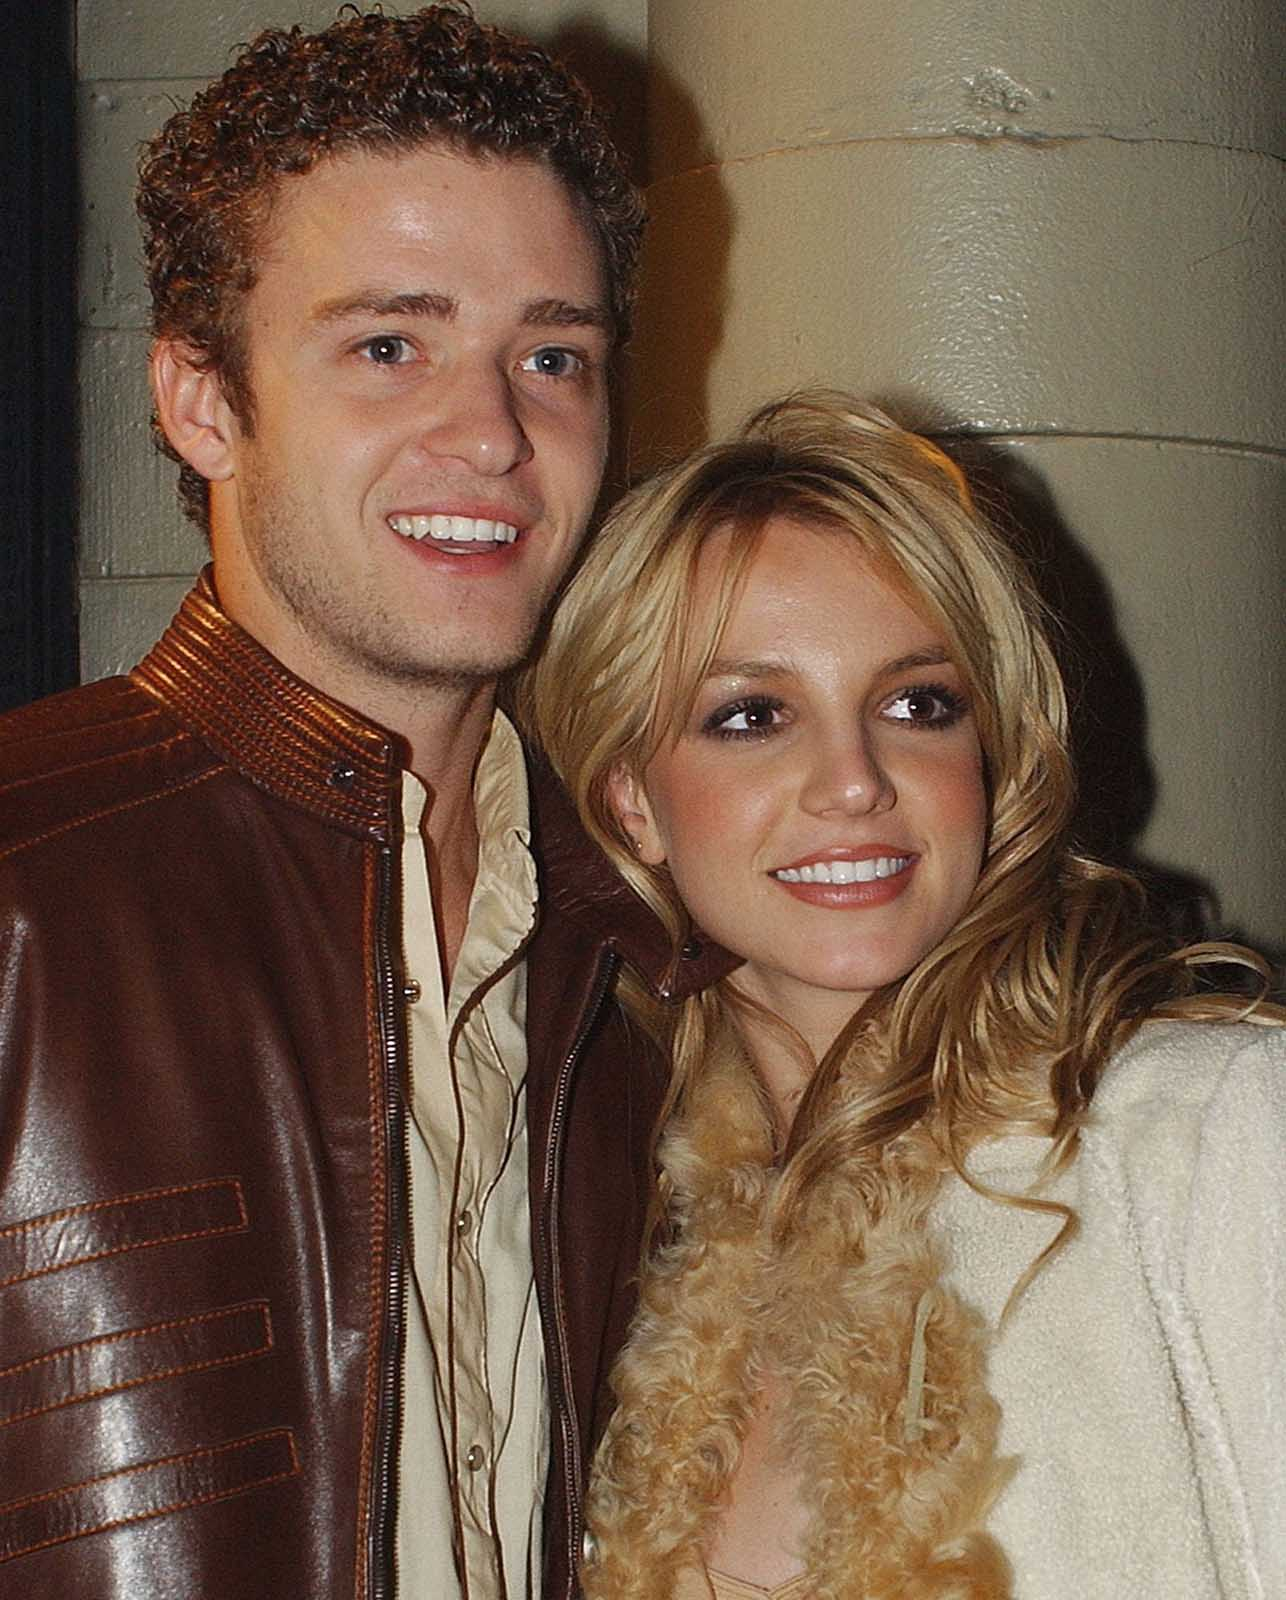 'Framing Britney Spears' has opened people's eyes to the  treatment of the popstar. Now people are asking: did she cheat on Justin Timberlake?